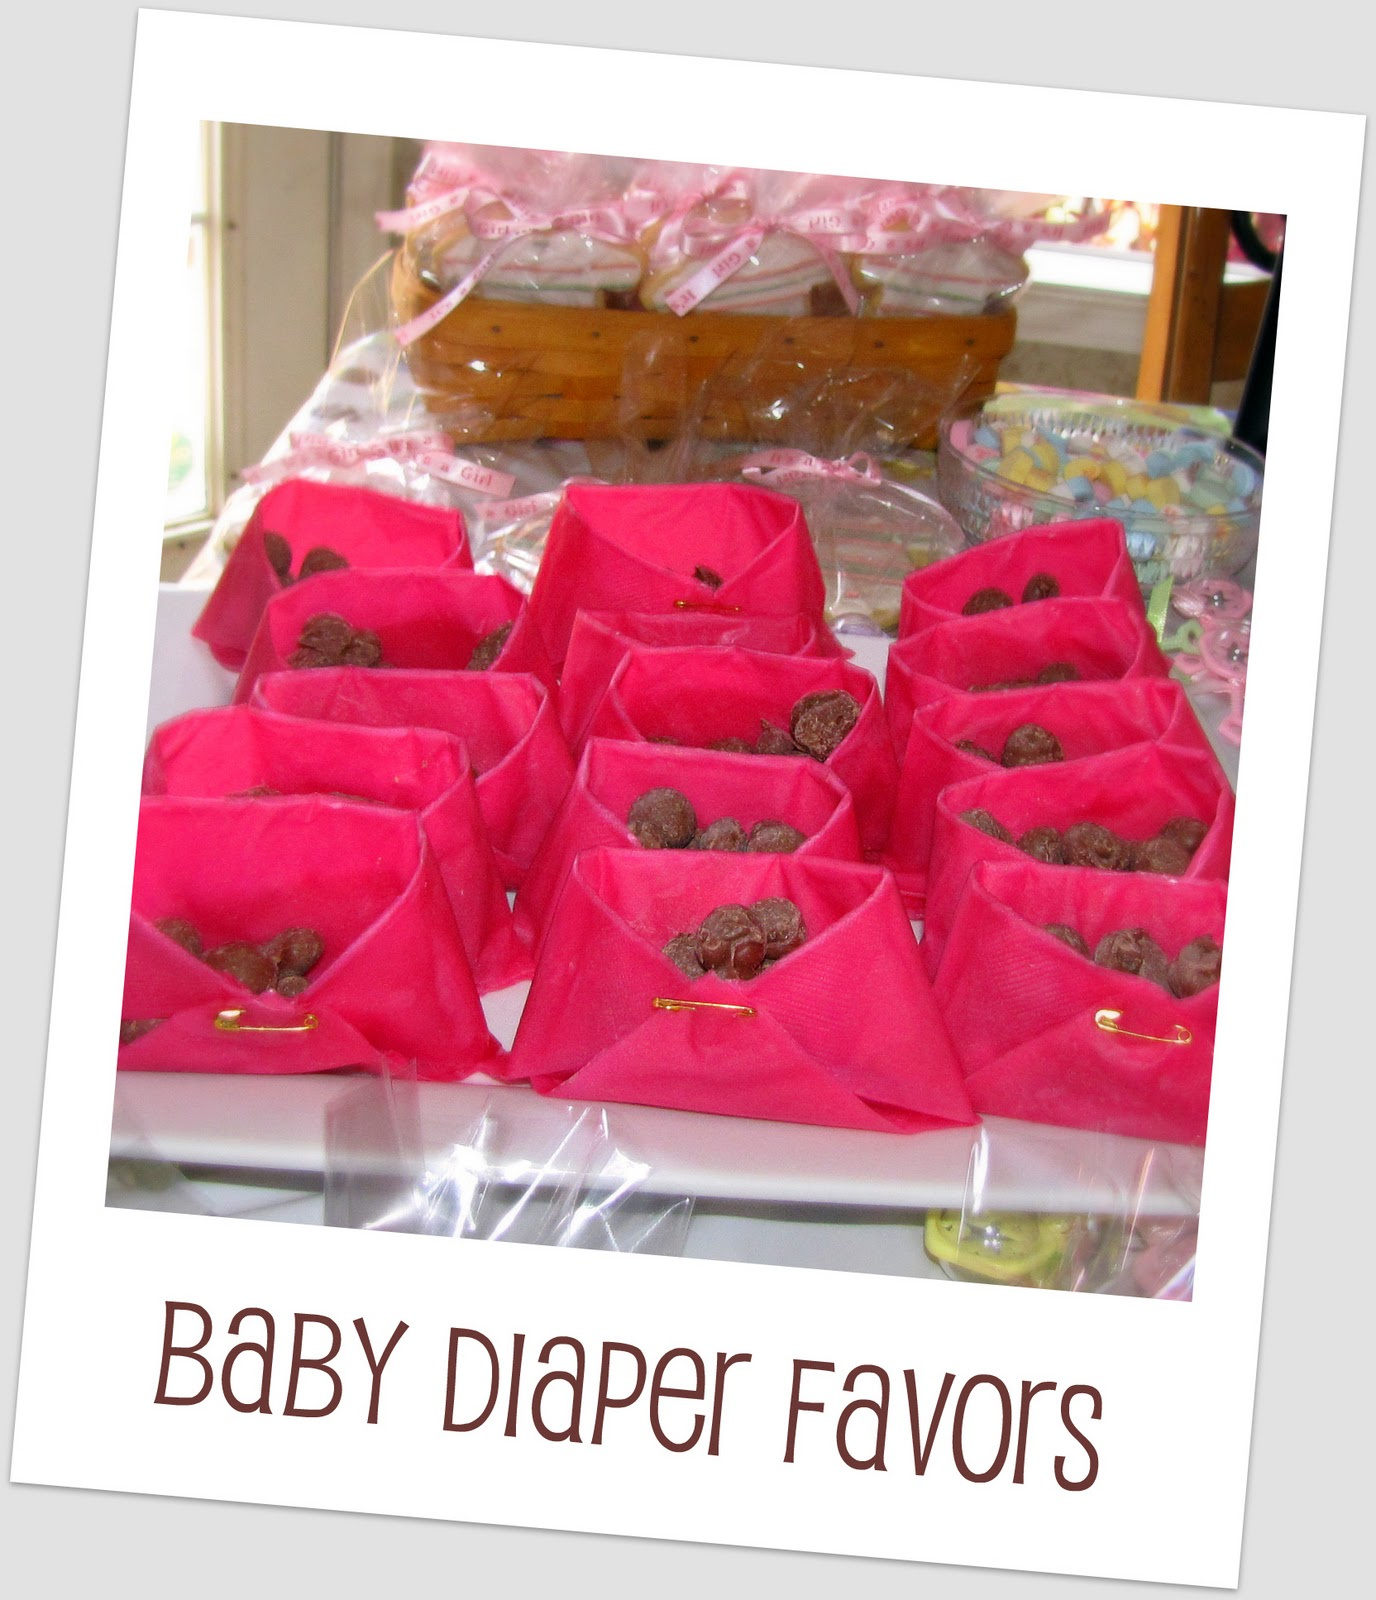 baby shower um 17 years ago a lady brought these baby diaper favors